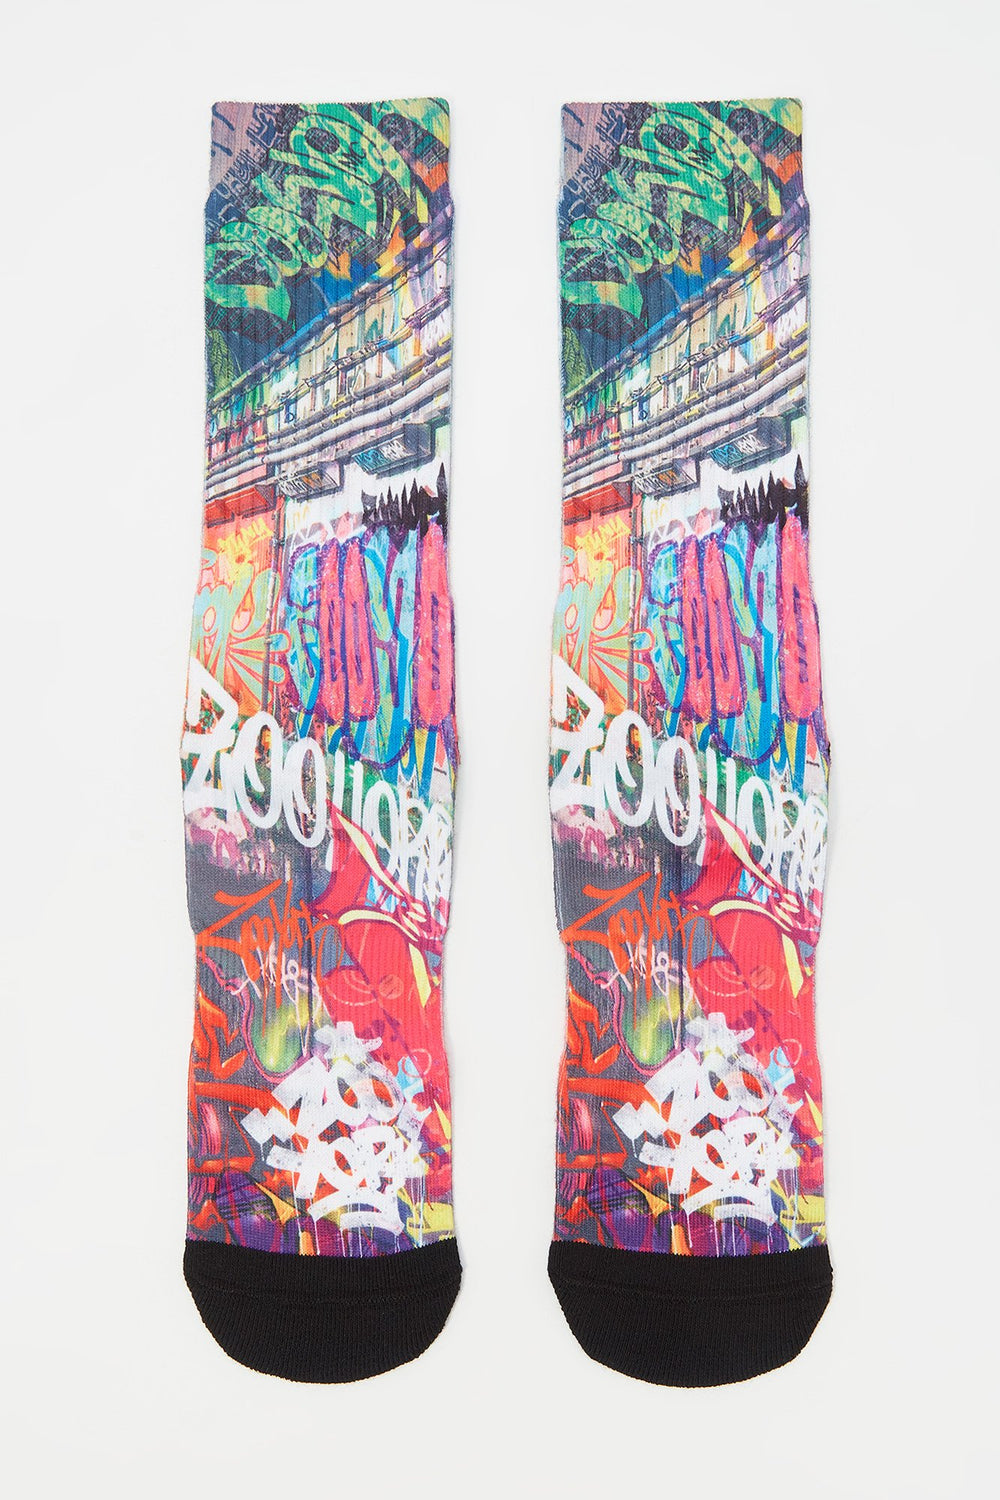 Chaussettes Graffiti Zoo York Homme Rose